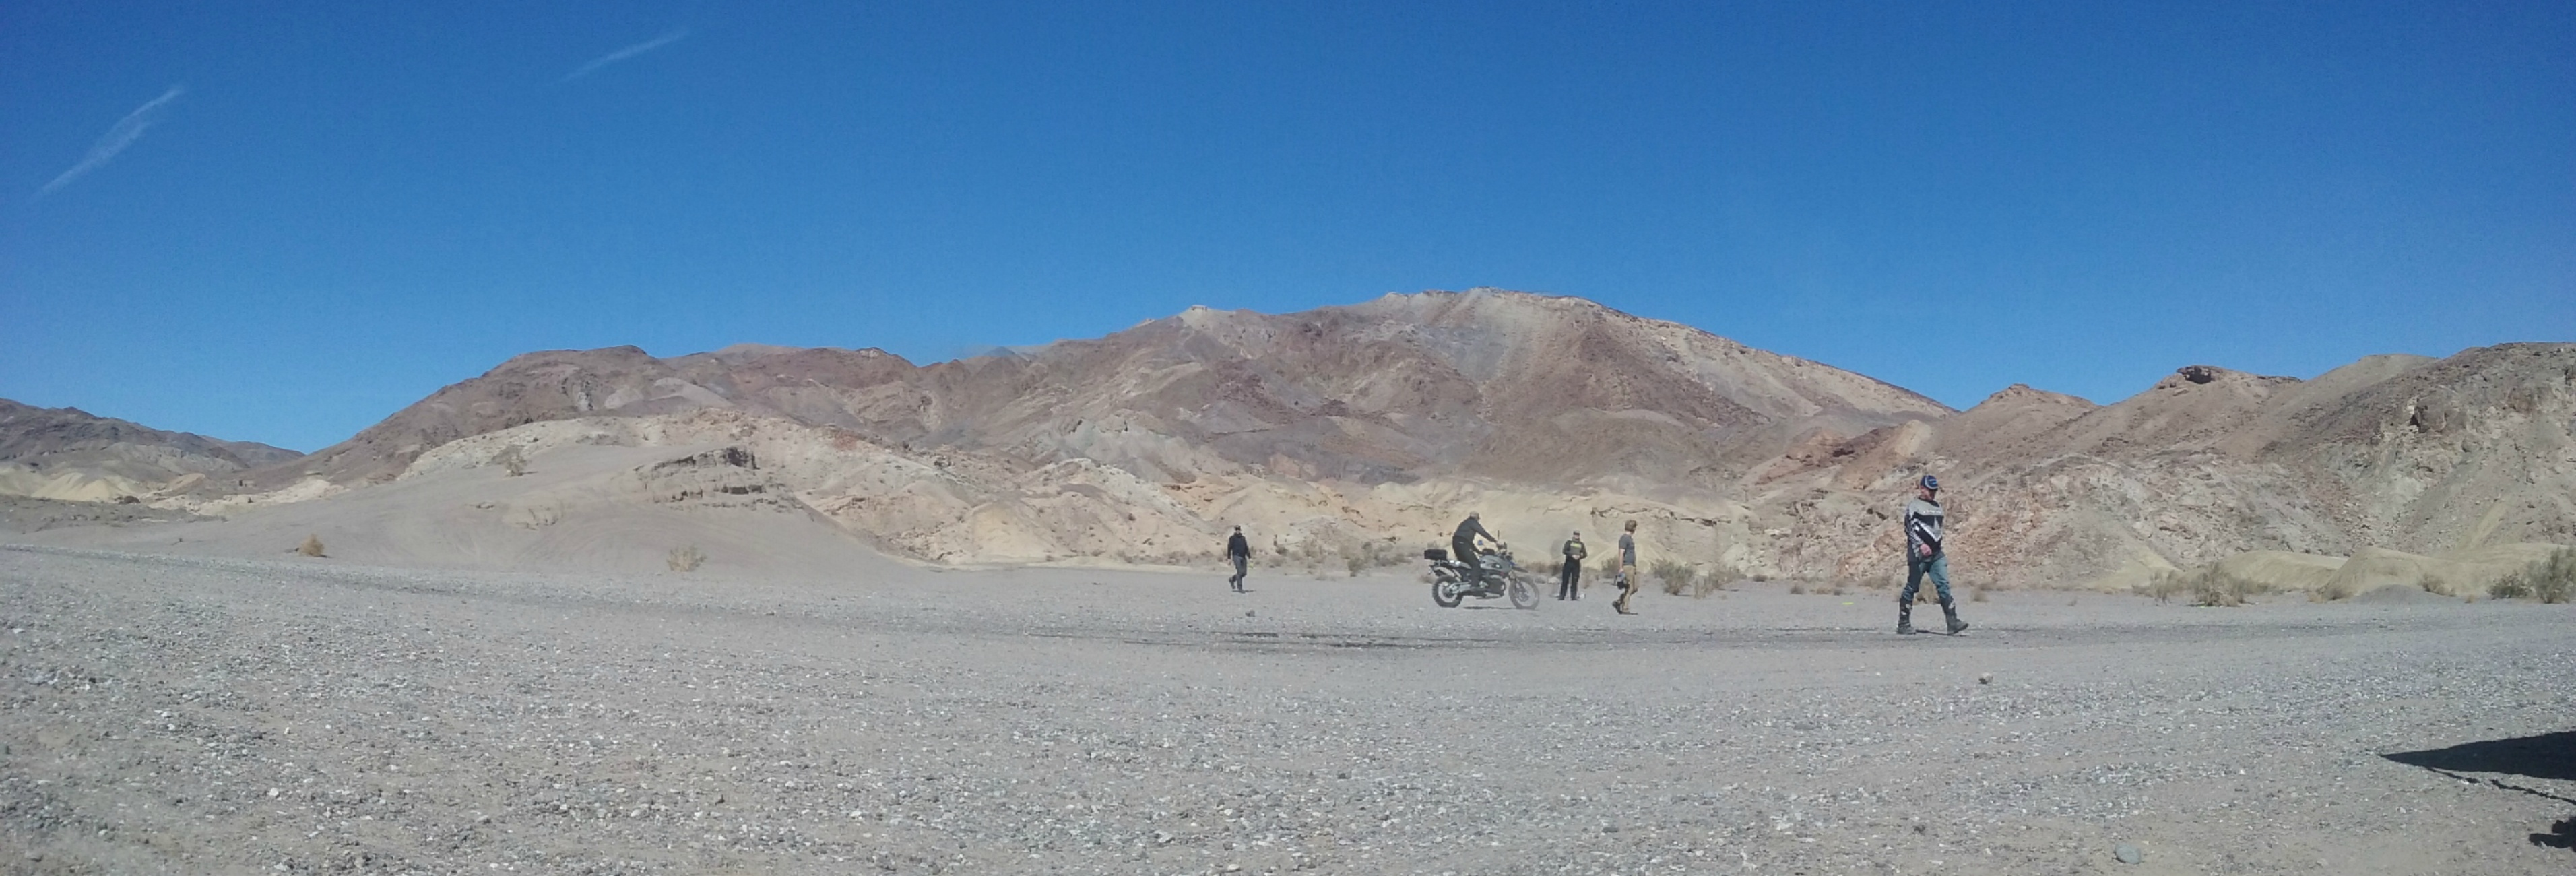 wide view of barren desert with dual sport riders on a motorcycle in the distance